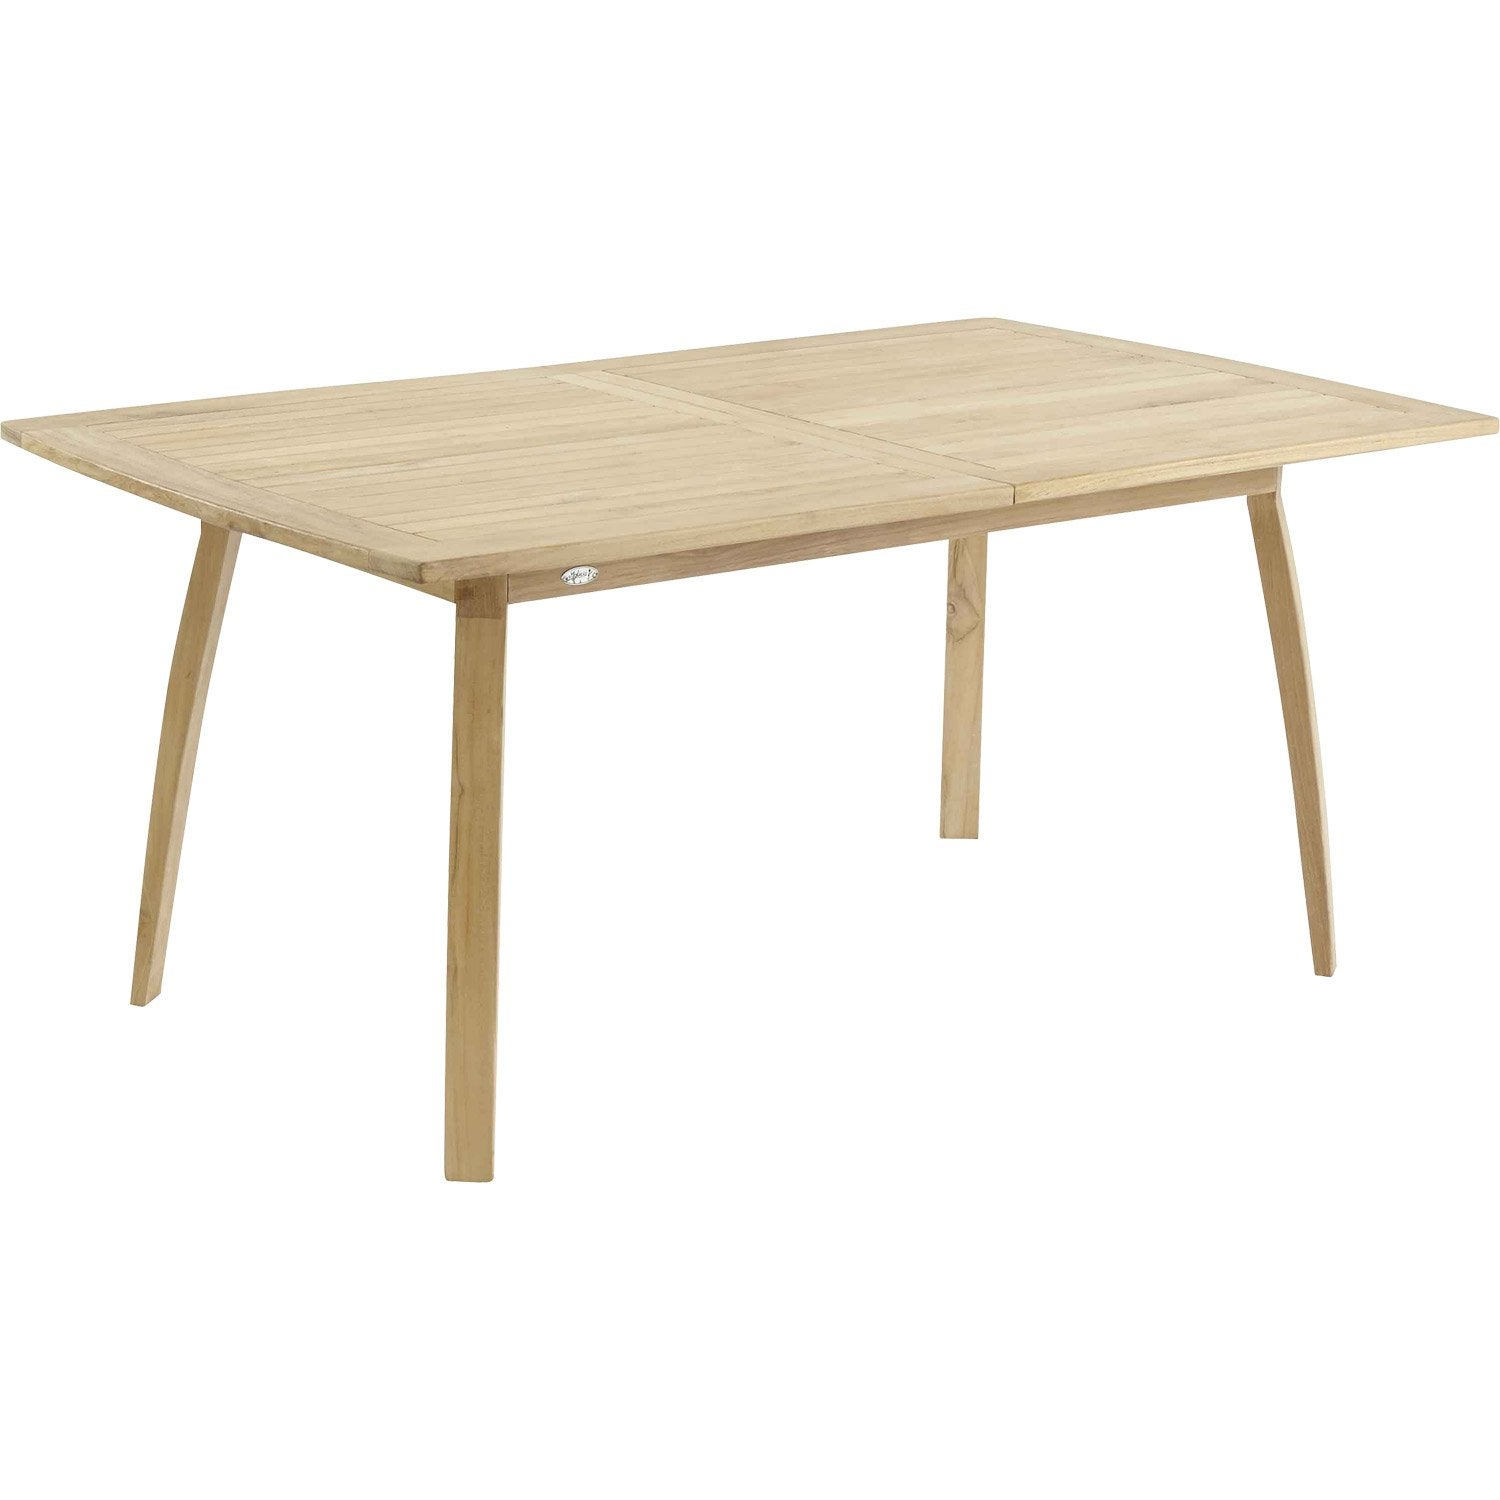 Table basse ovale leroy merlin - Pied de table basse leroy merlin ...